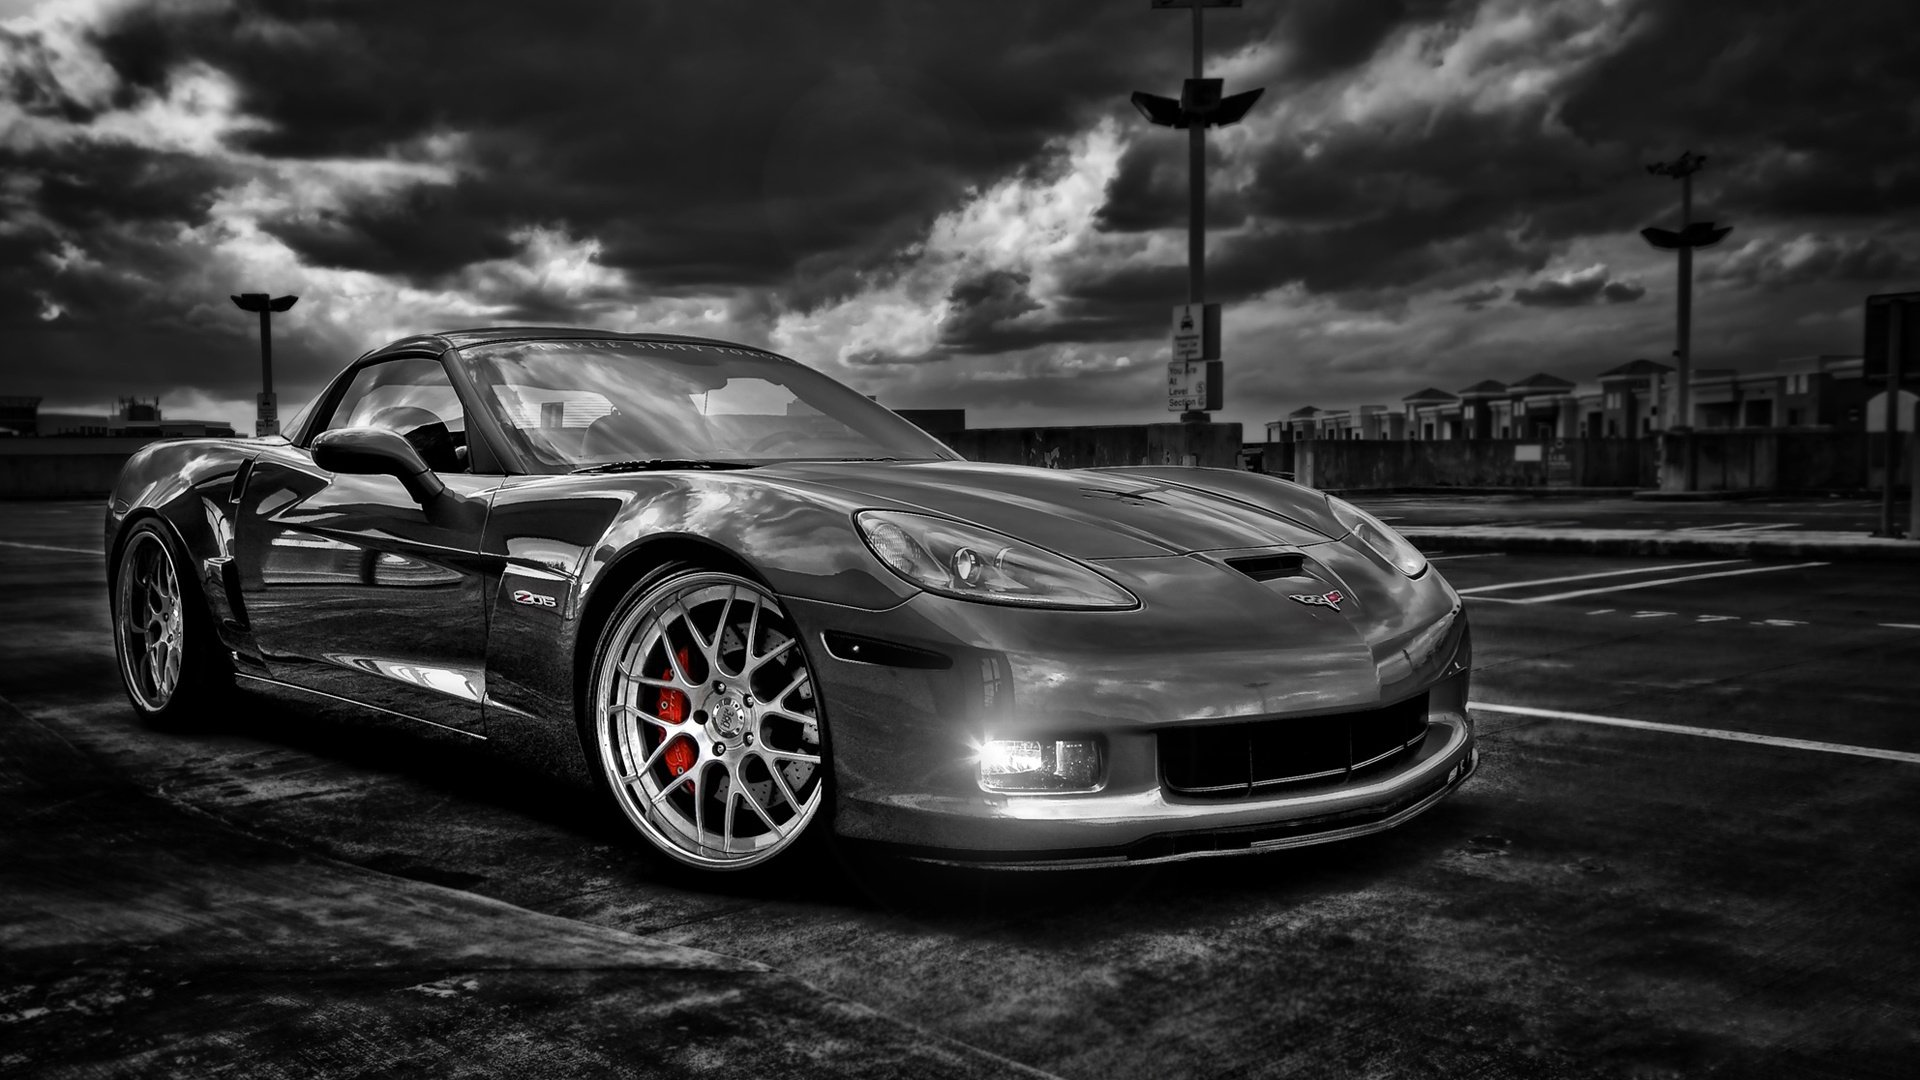 Hd car wallpapers 1920x1080 wallpapersafari - Car desktop wallpaper ...